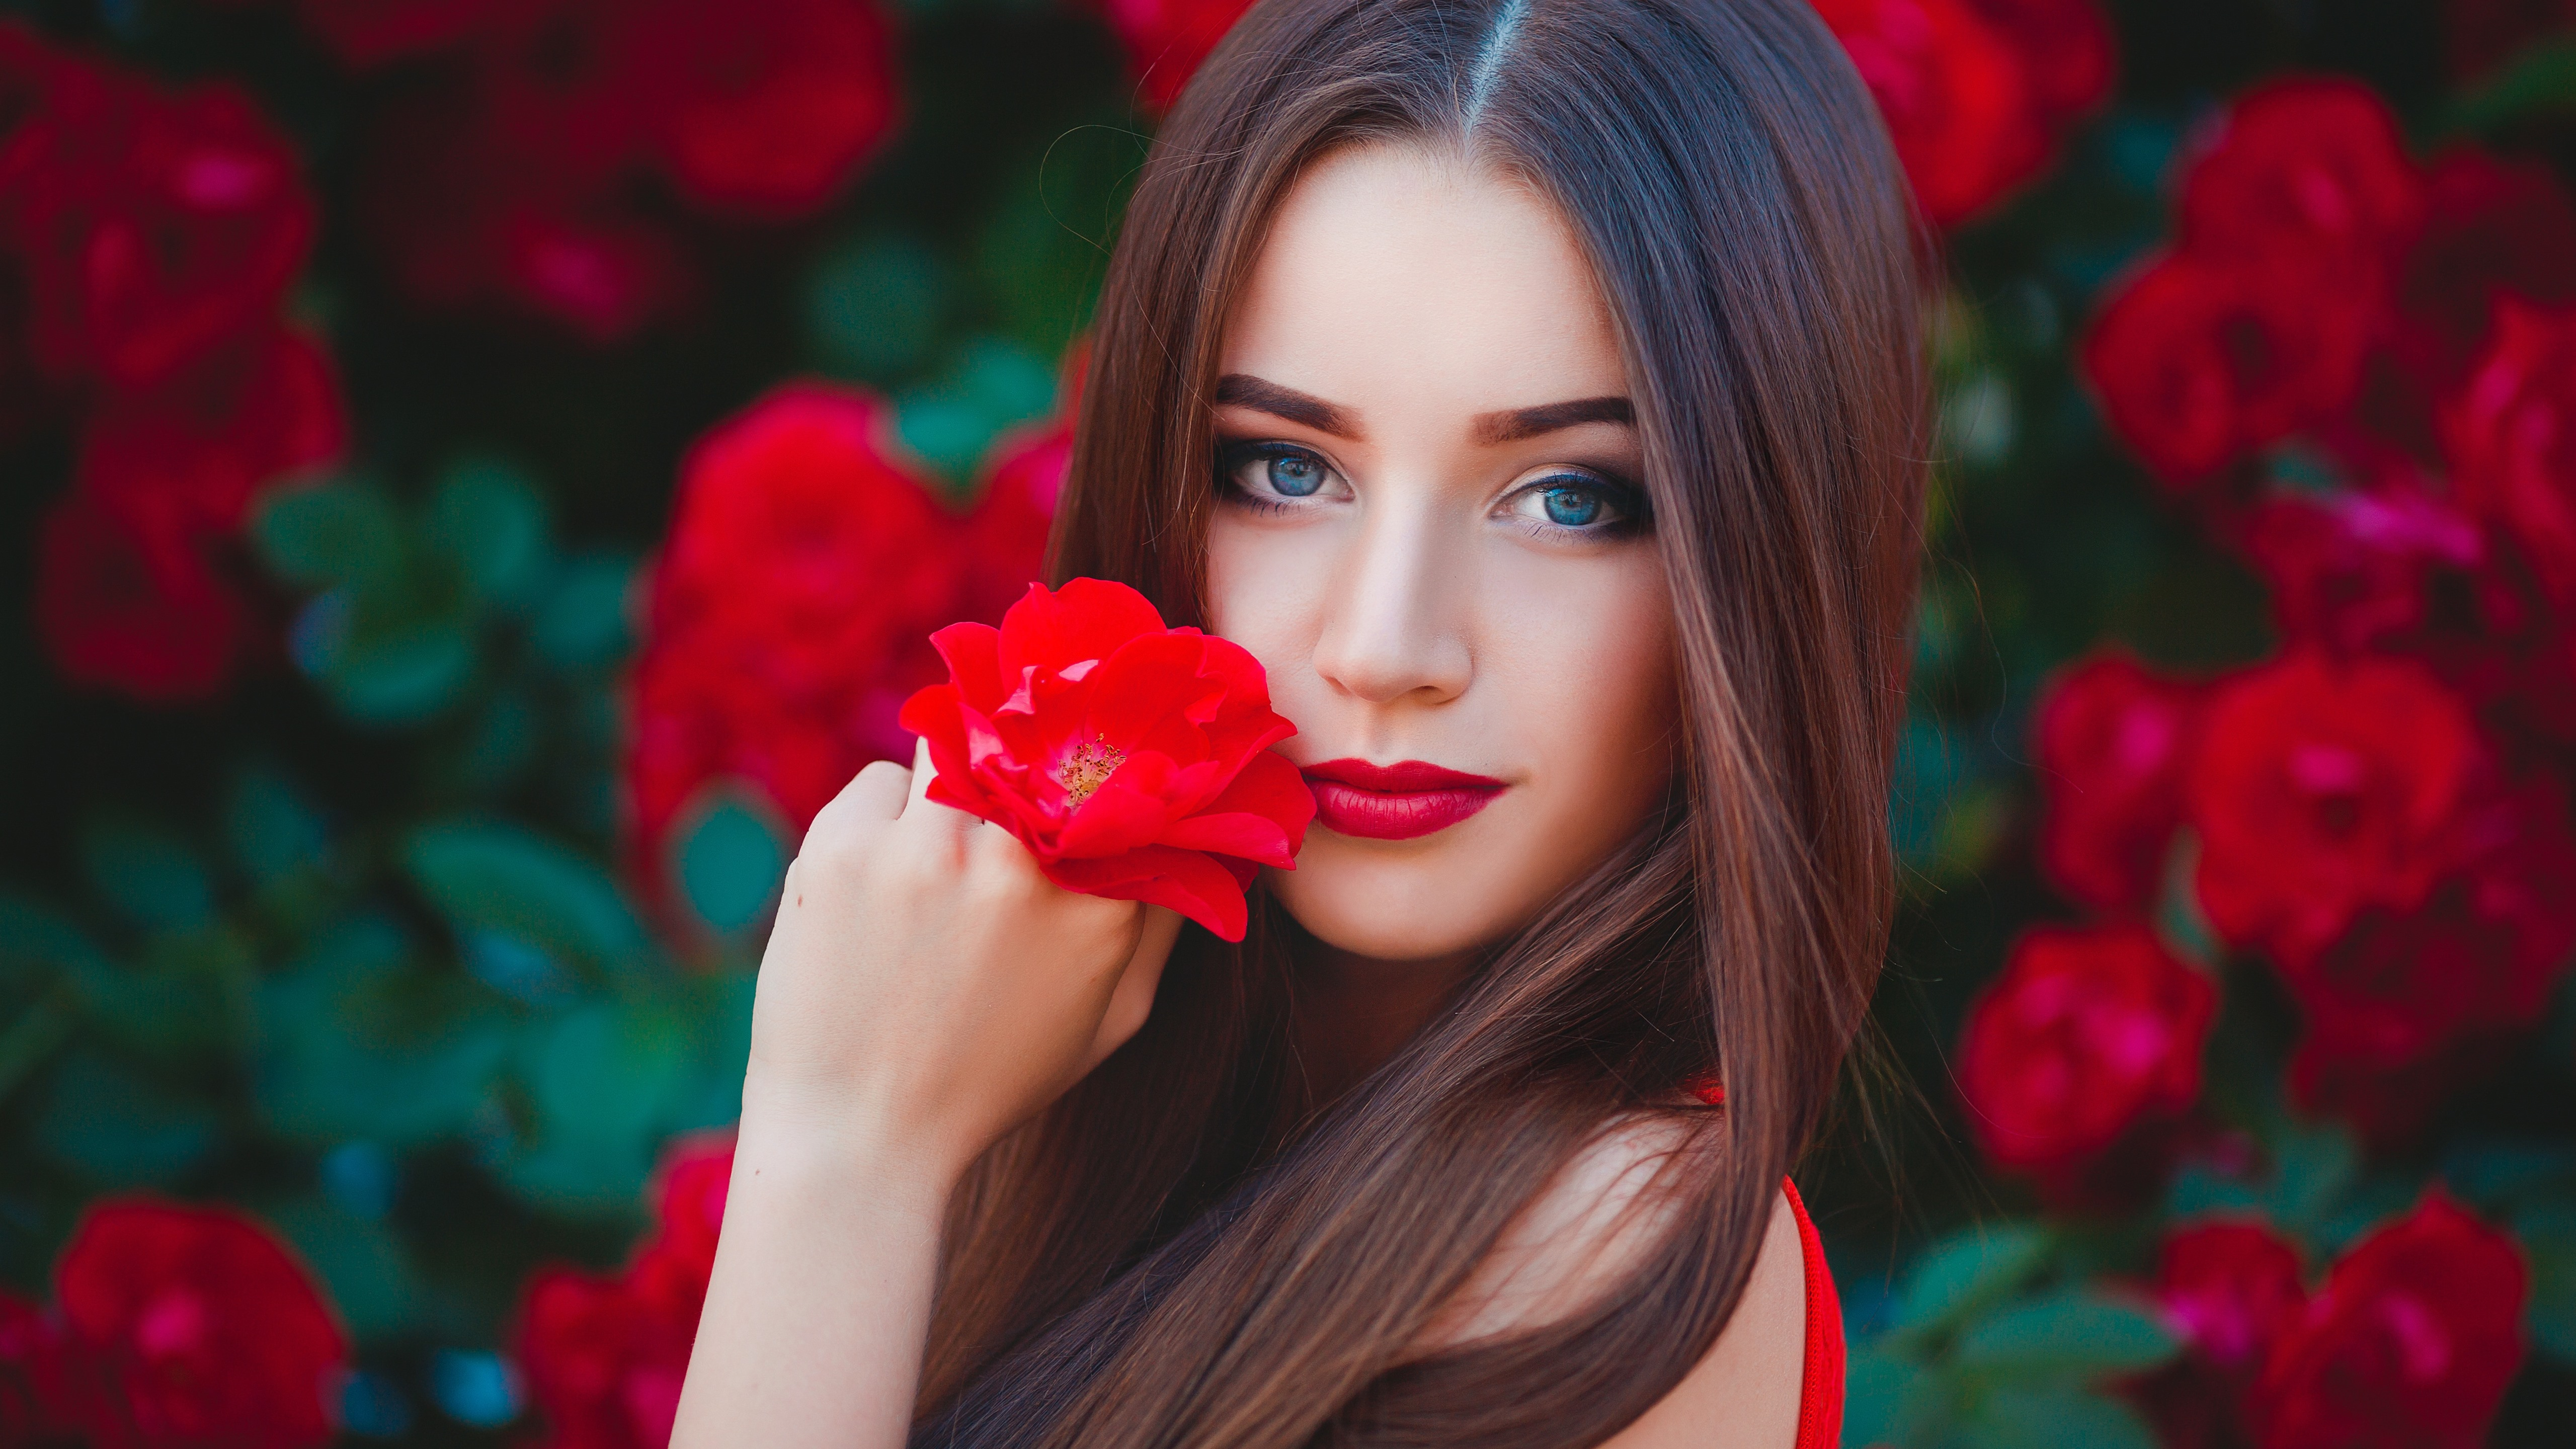 Wallpaper Blue Eyes Girl Brown Hair Red Flowers 5120x2880 Uhd 5k Picture Image